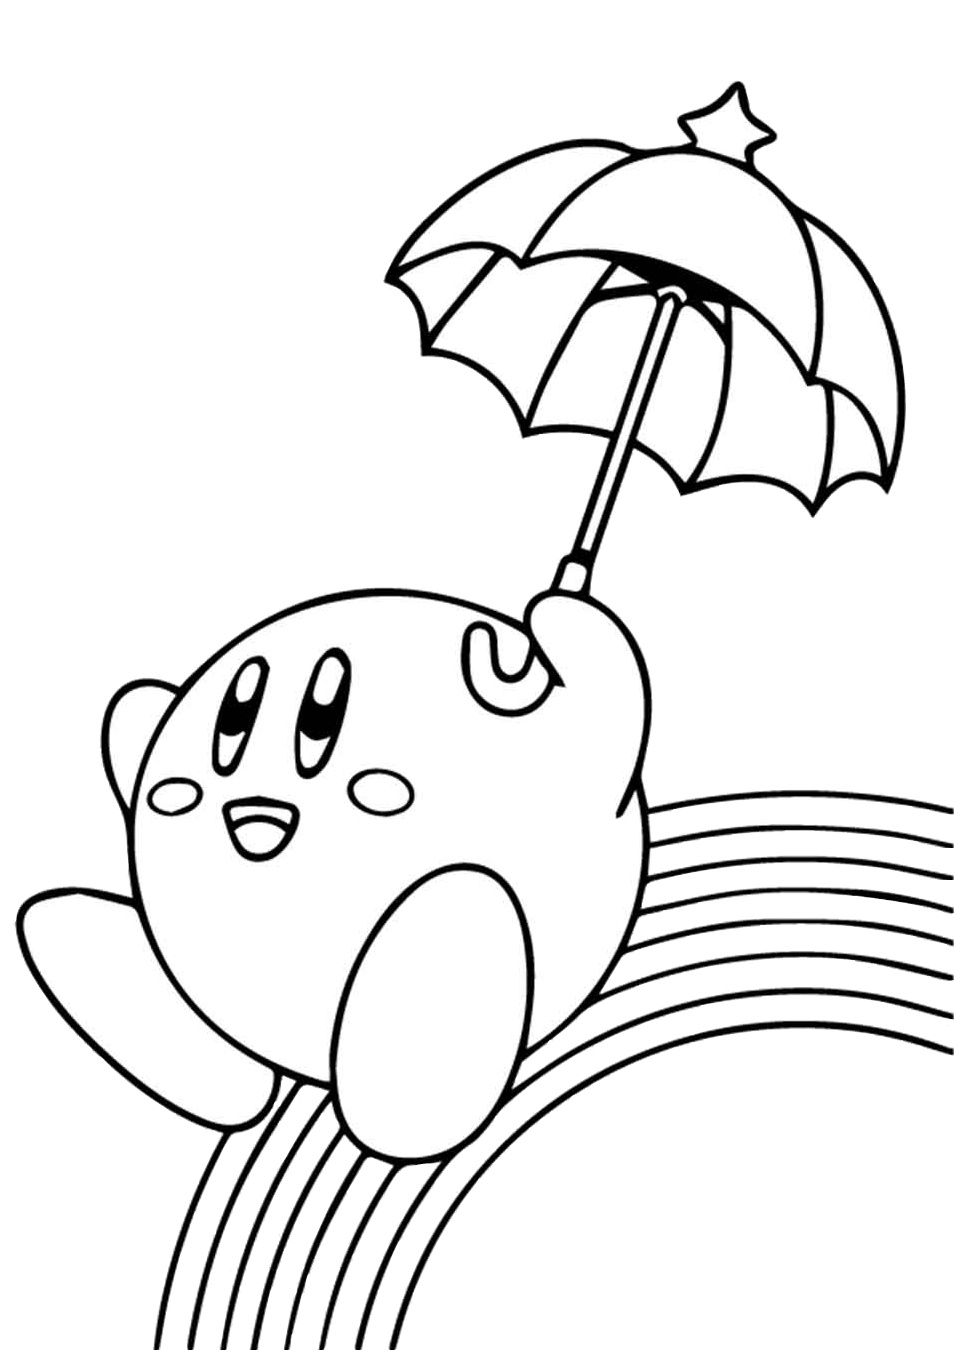 Cute Smiling Kawaii Rainbow Coloring Pages